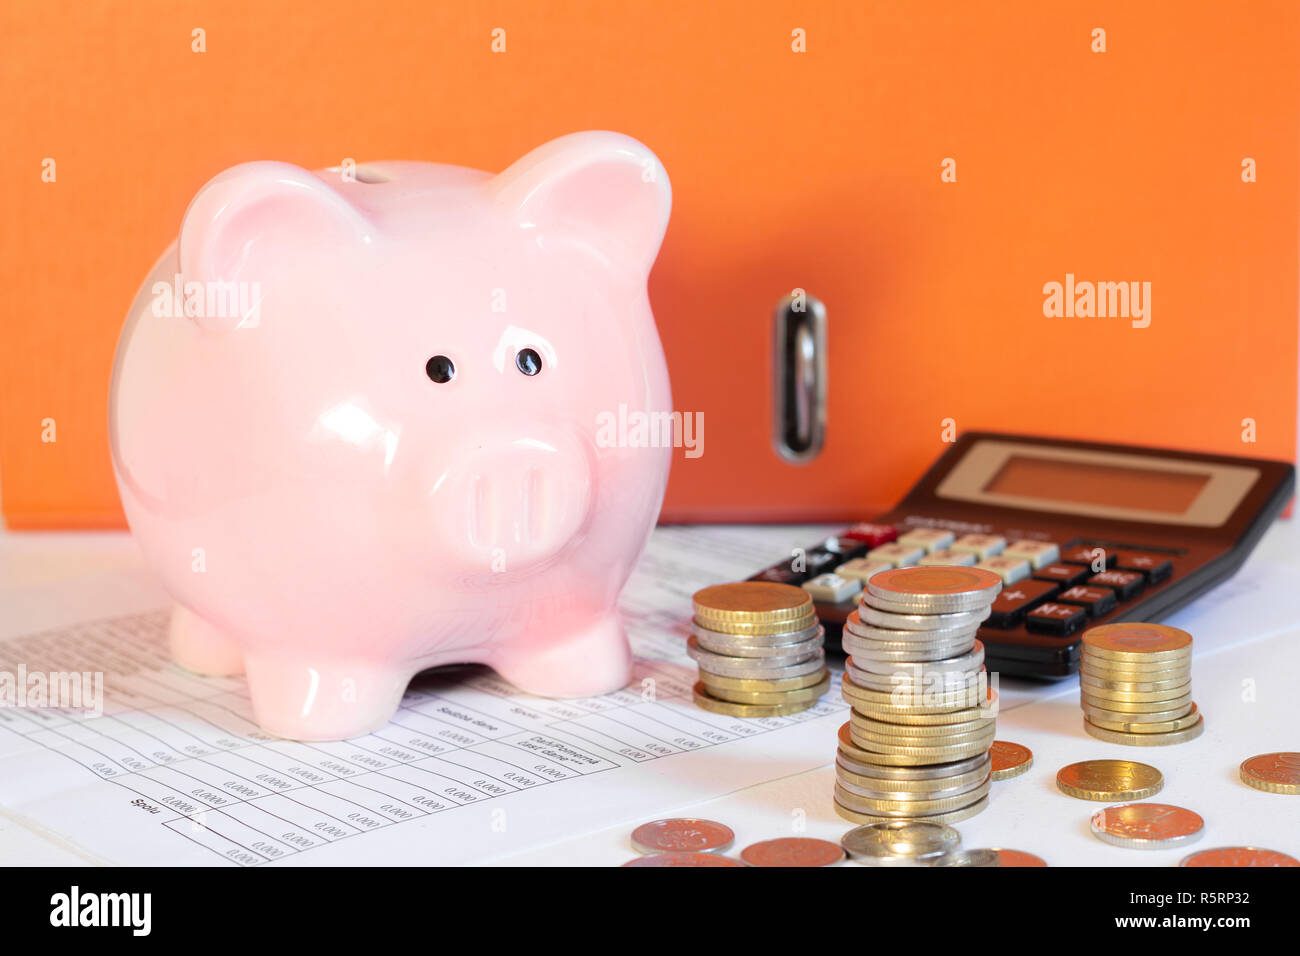 personal finances and savings concept Stock Photo